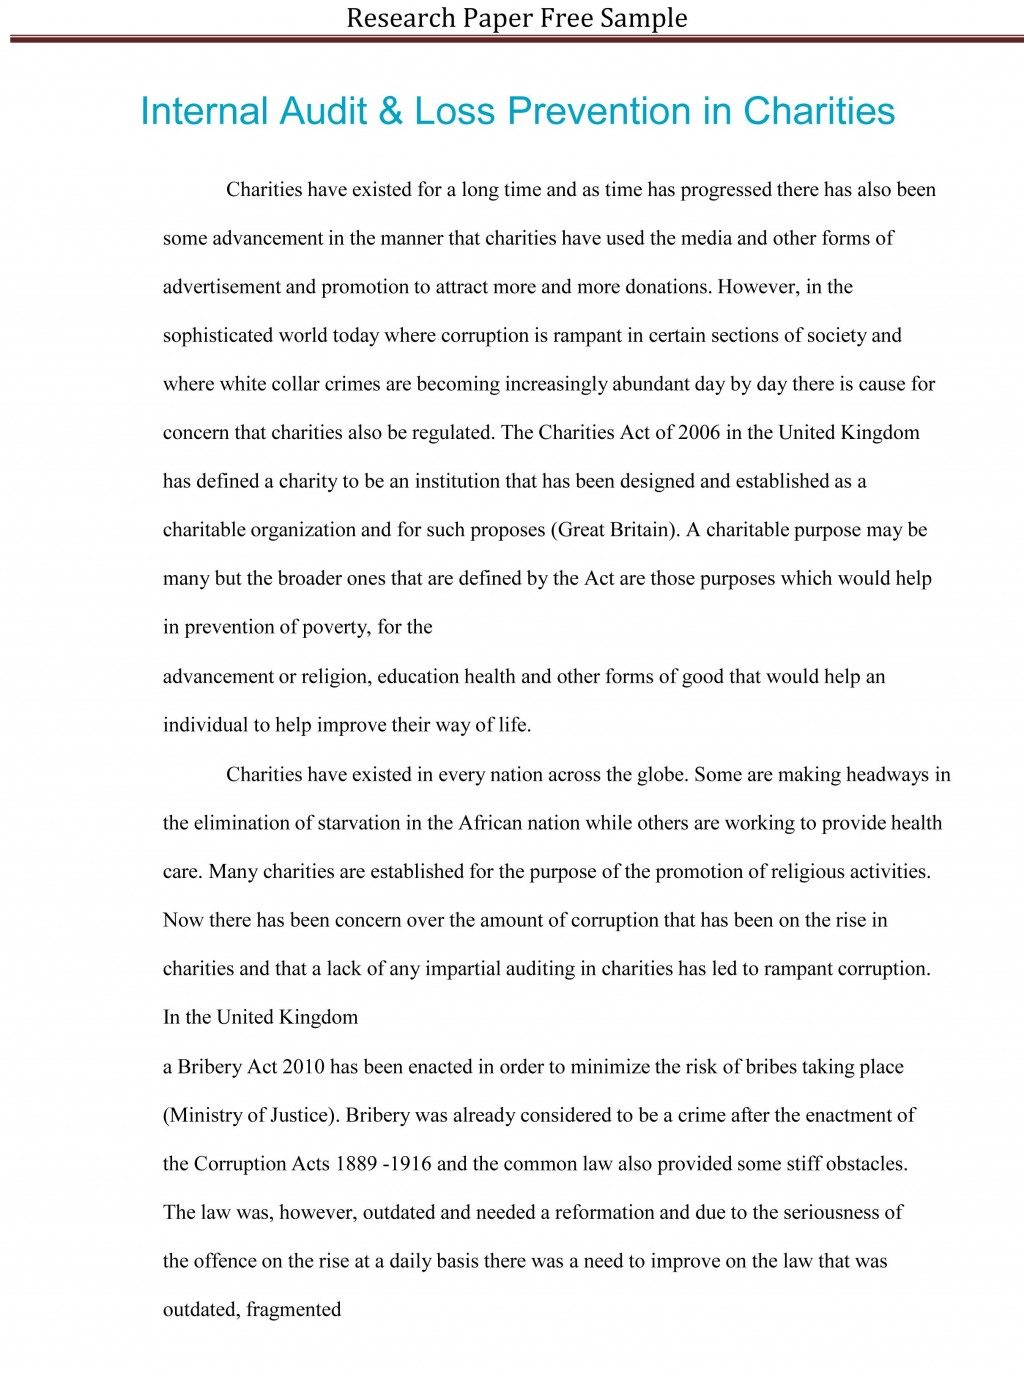 003 Research Paper Academic Papers Stunning Examples Large